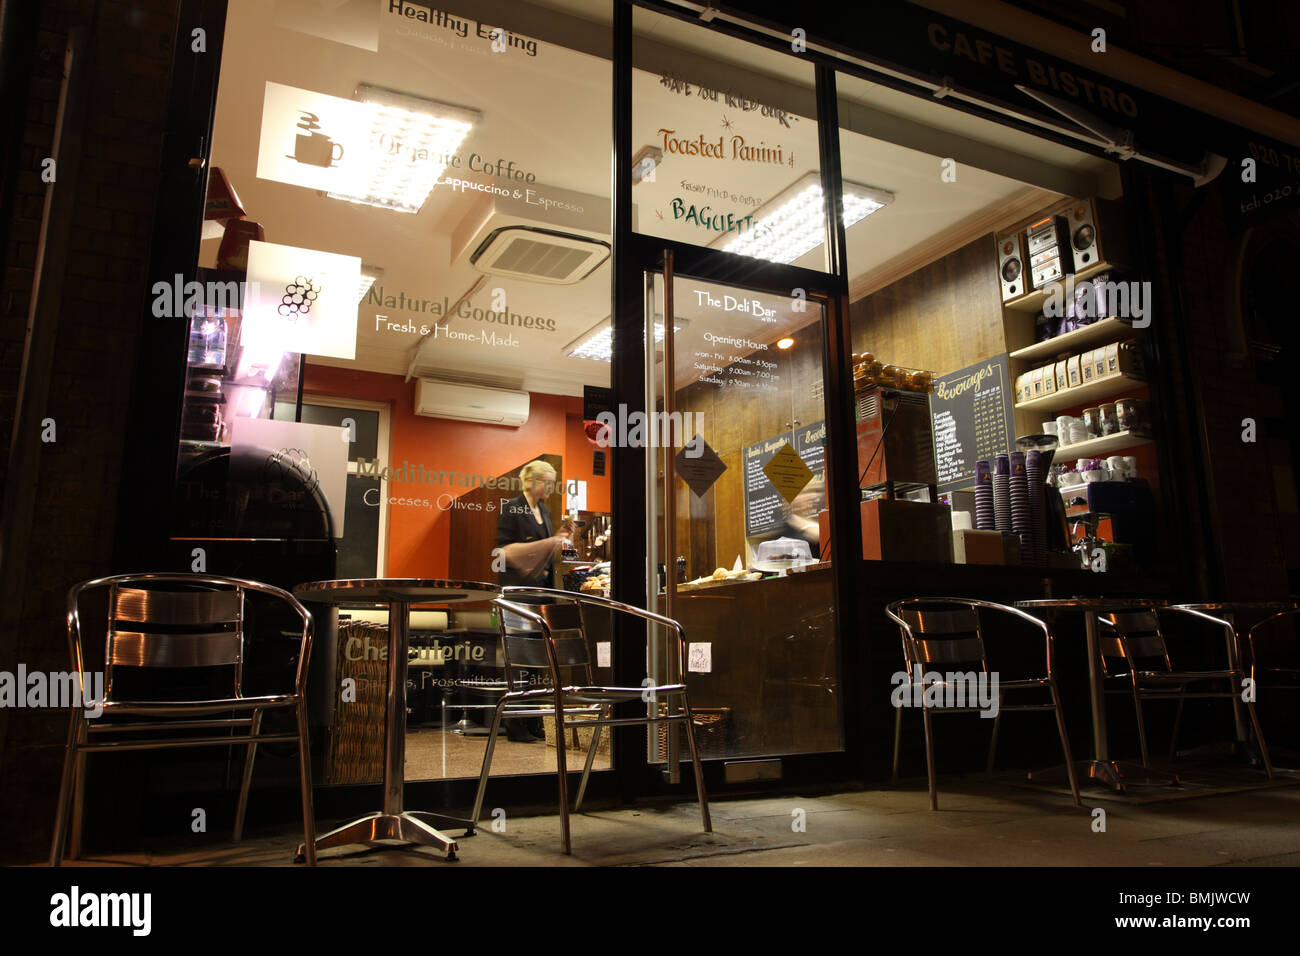 Night view of a coffee shop in West Kensington, London, W14. - Stock Image